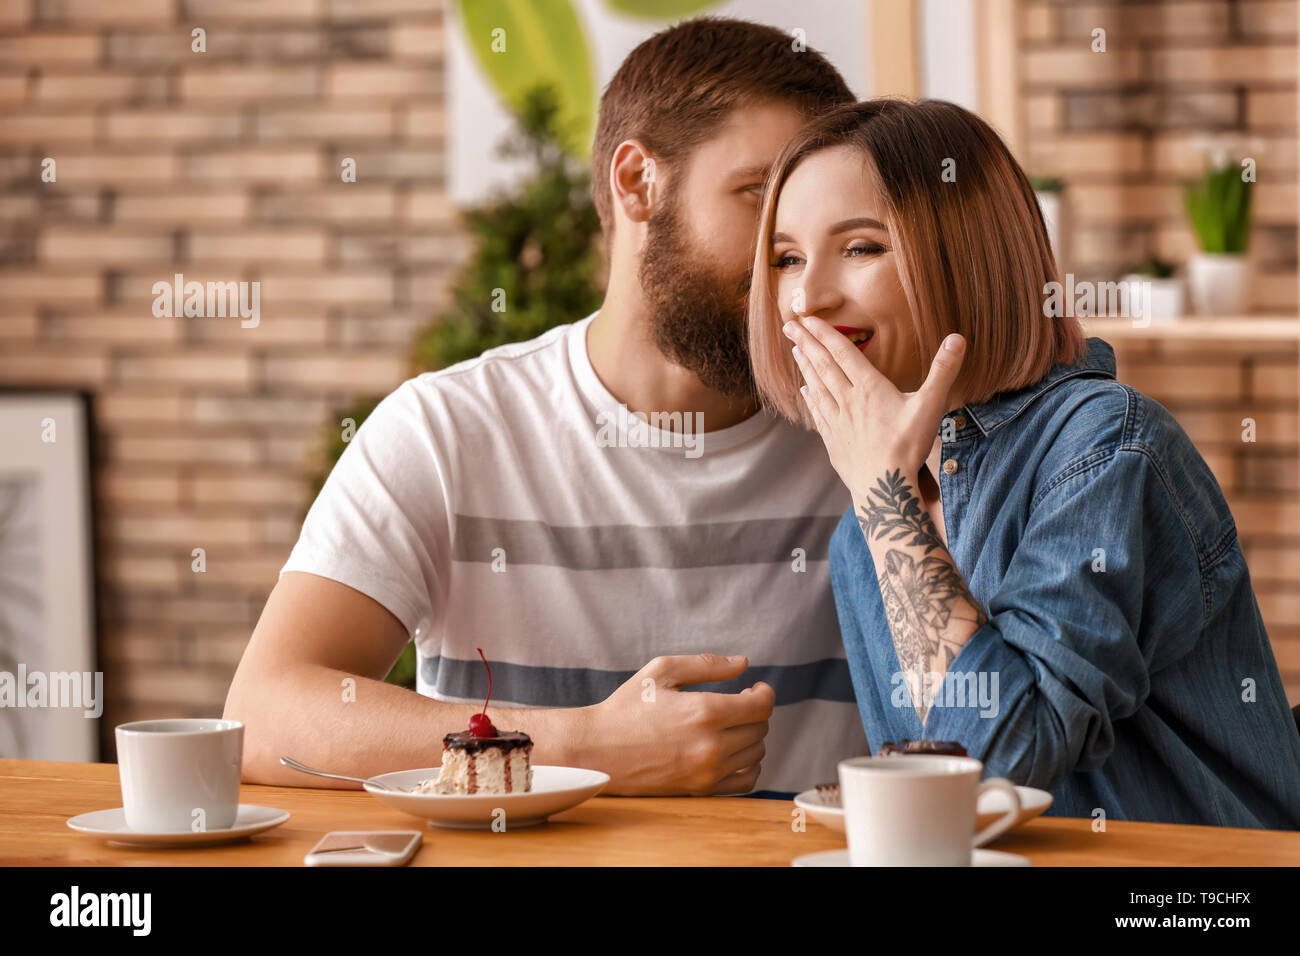 Kiss Cafe datingpopulaire dating app Indonesië